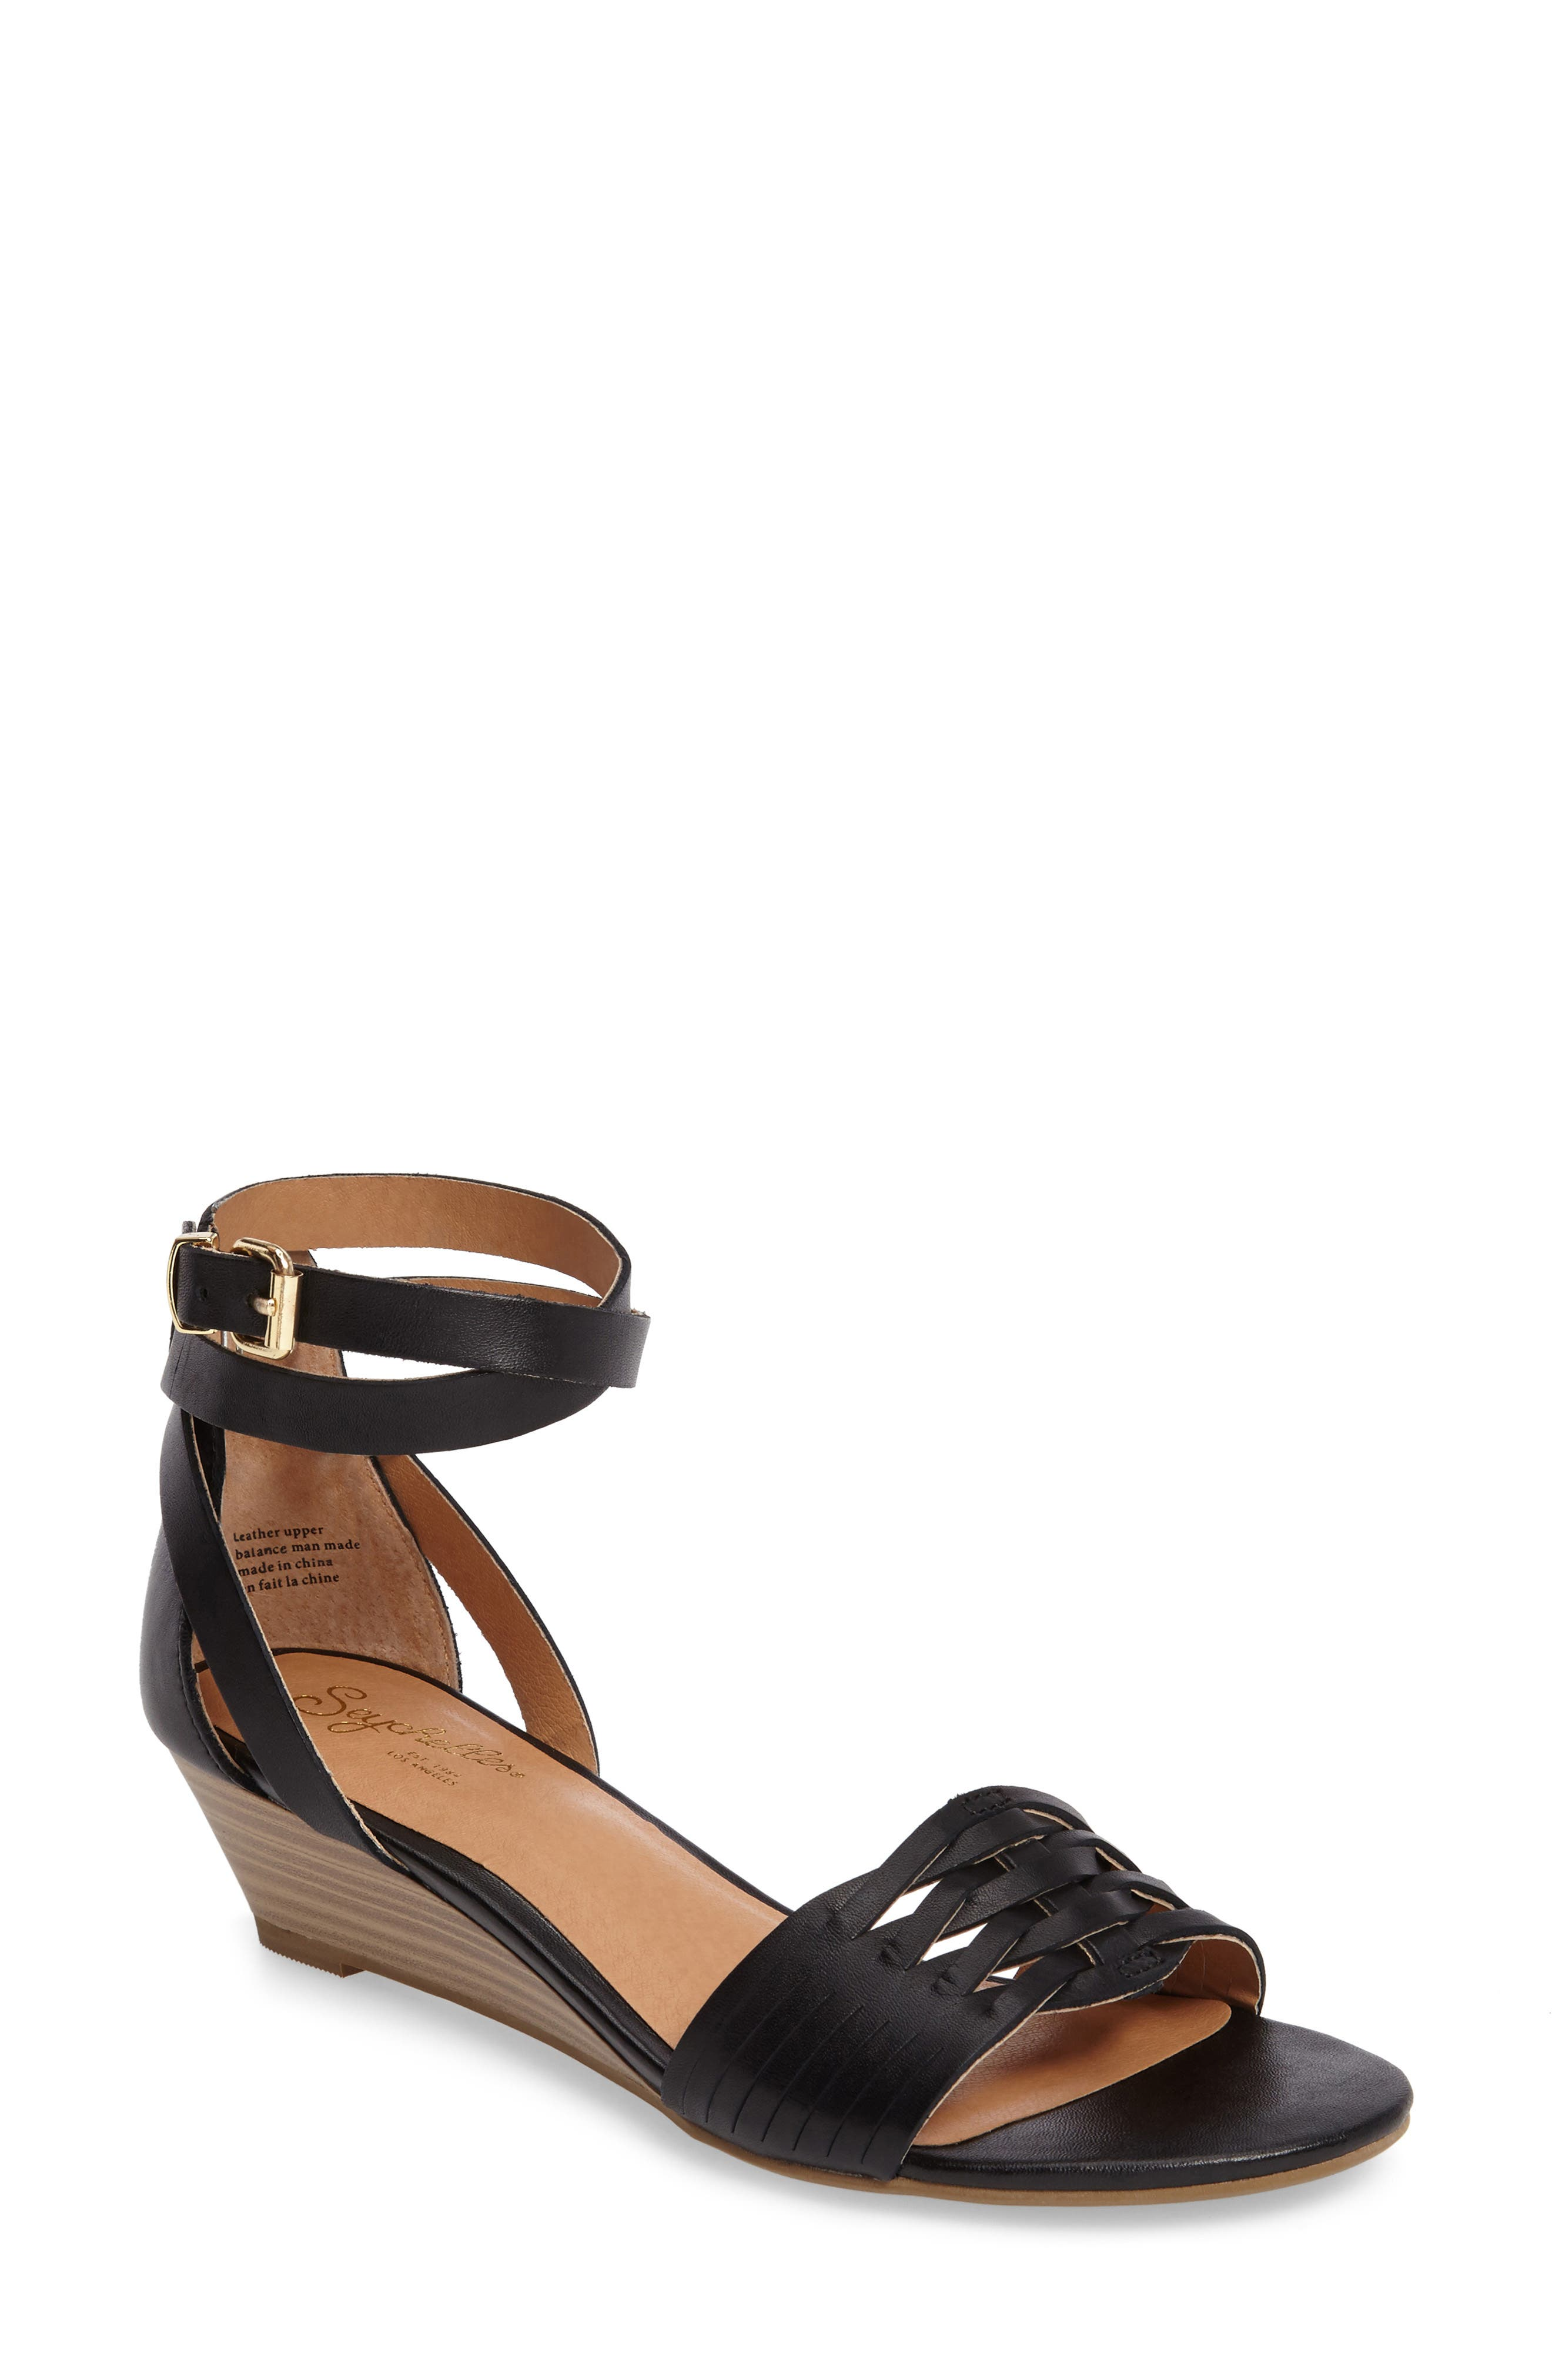 Main Image - Seychelles Sincere Wraparound Wedge Sandal (Women)